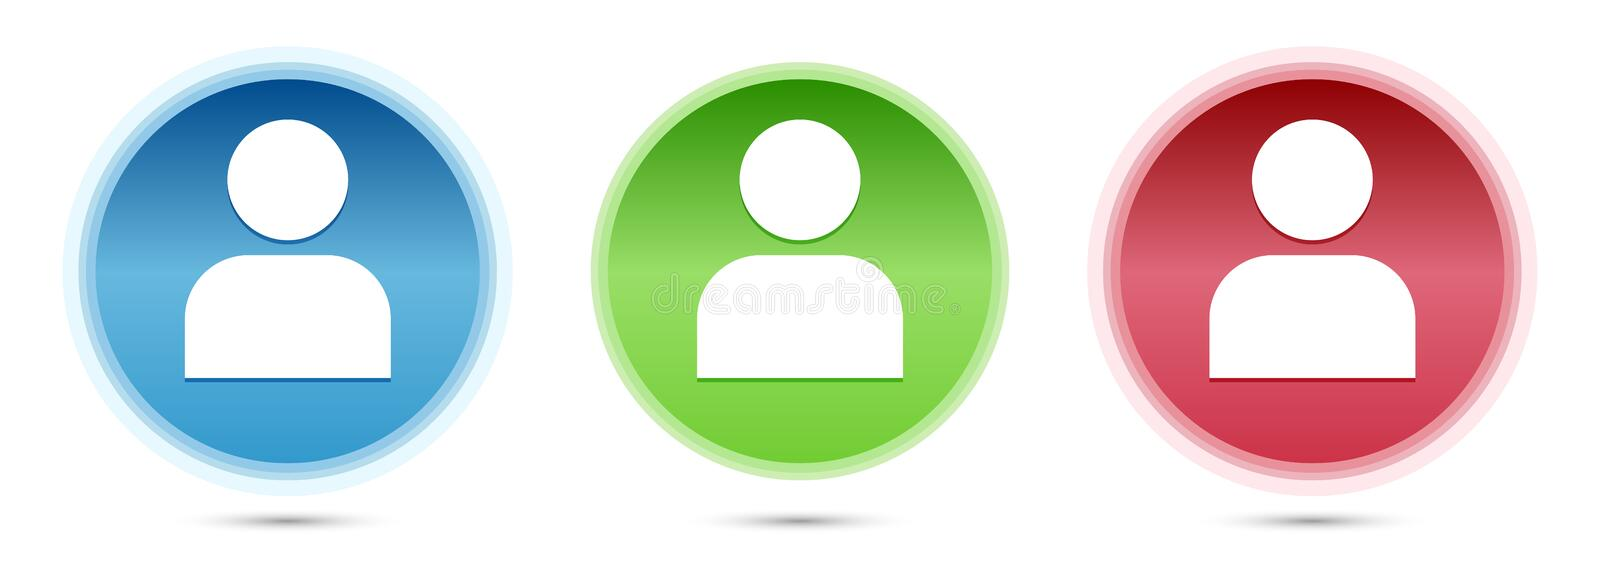 User profile icon glass round buttons set illustration. User profile icon isolated on glass round buttons set illustration stock illustration